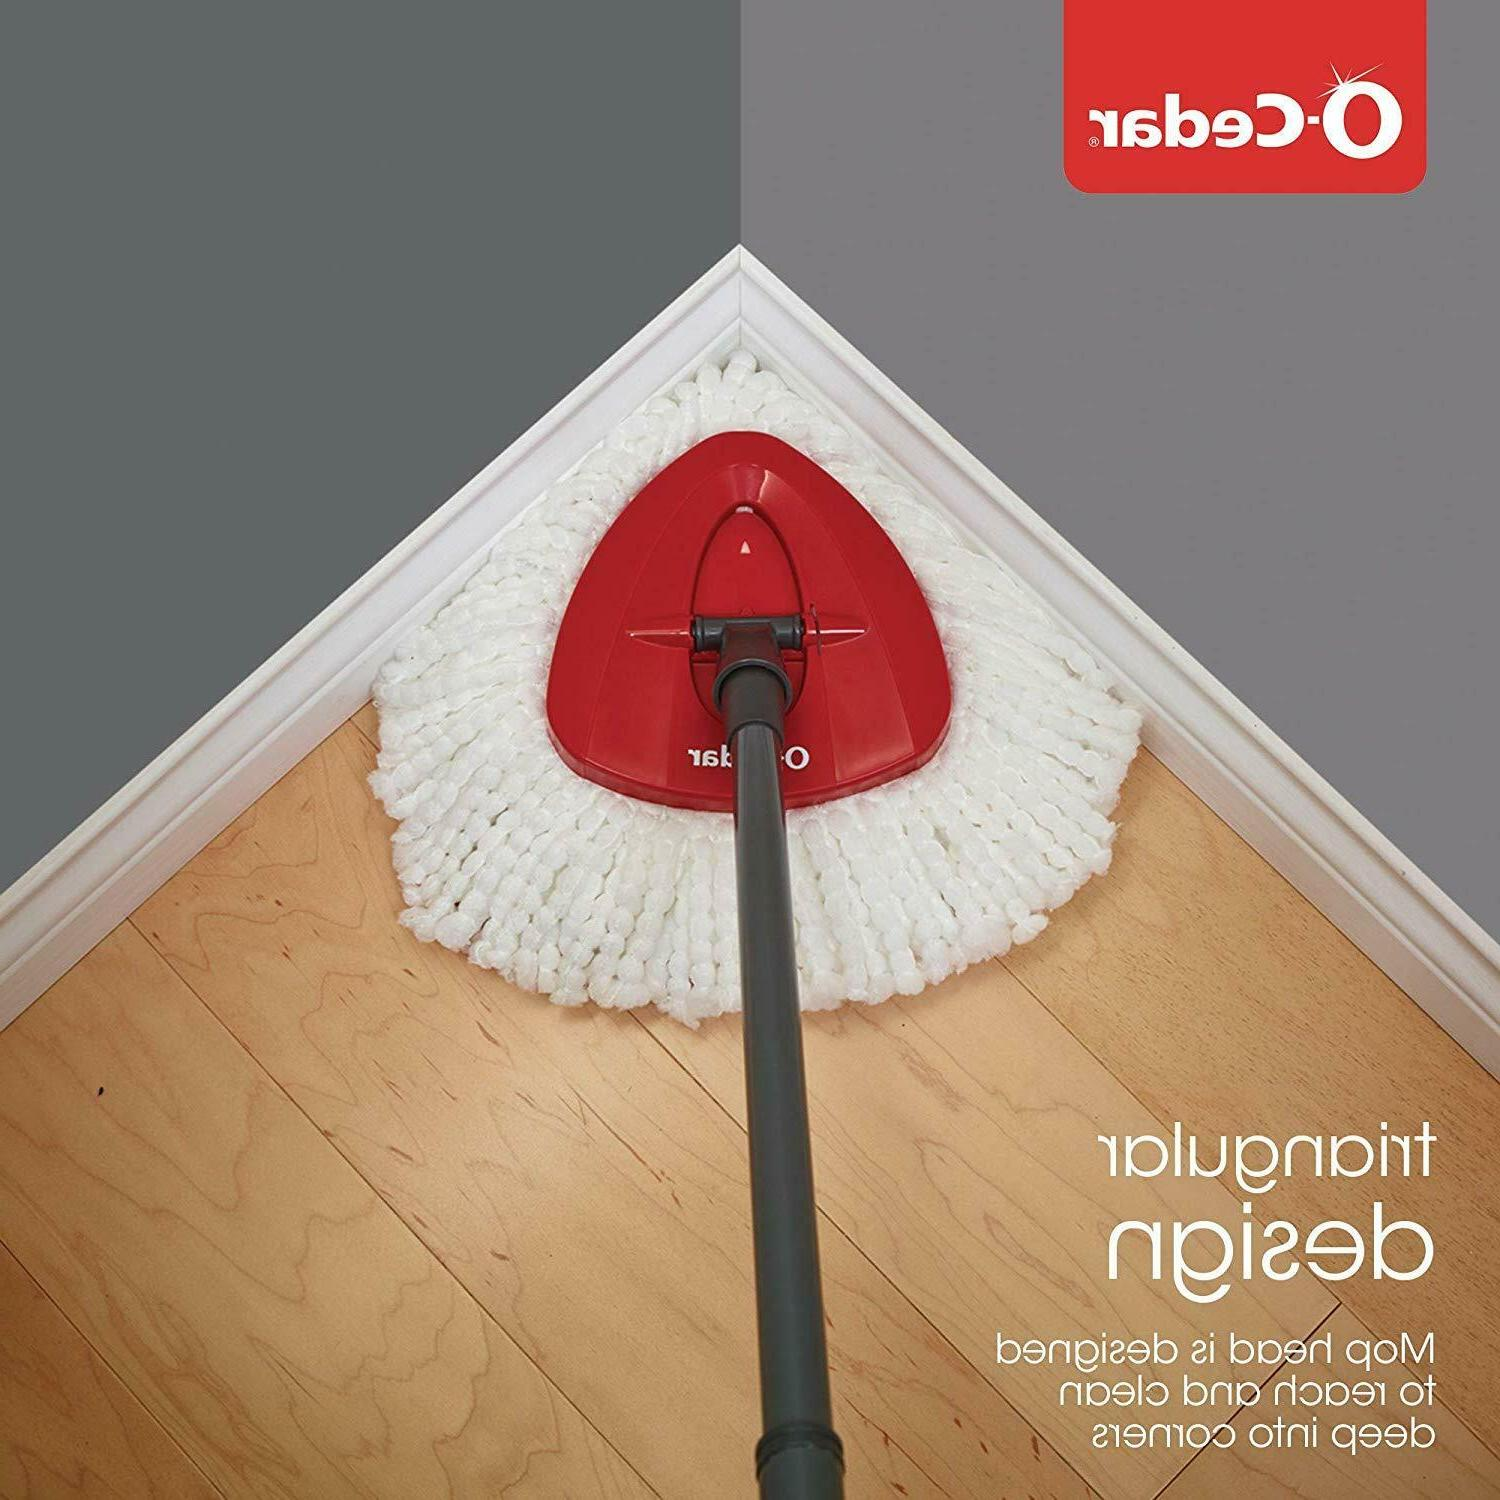 O-Cedar Easy Mop and Cleaning All Floors